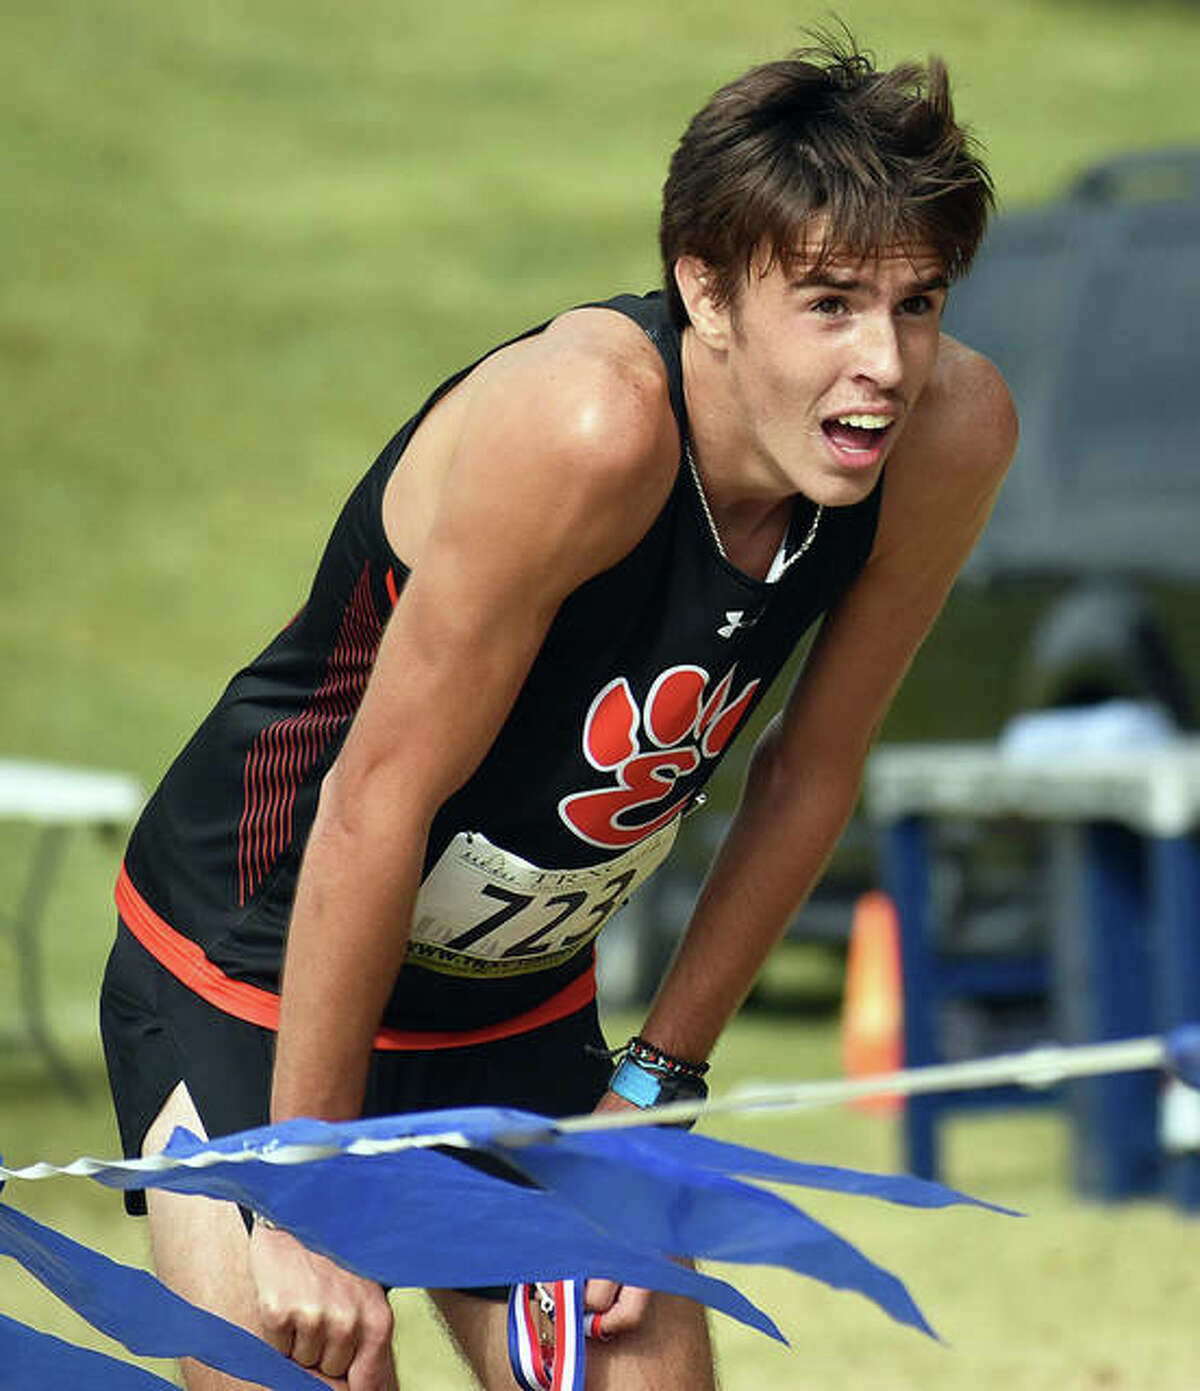 Edwardsville's Ryan Watts watches teammates approach the finish line after his victory in the SWC Meet last season in Swansea.